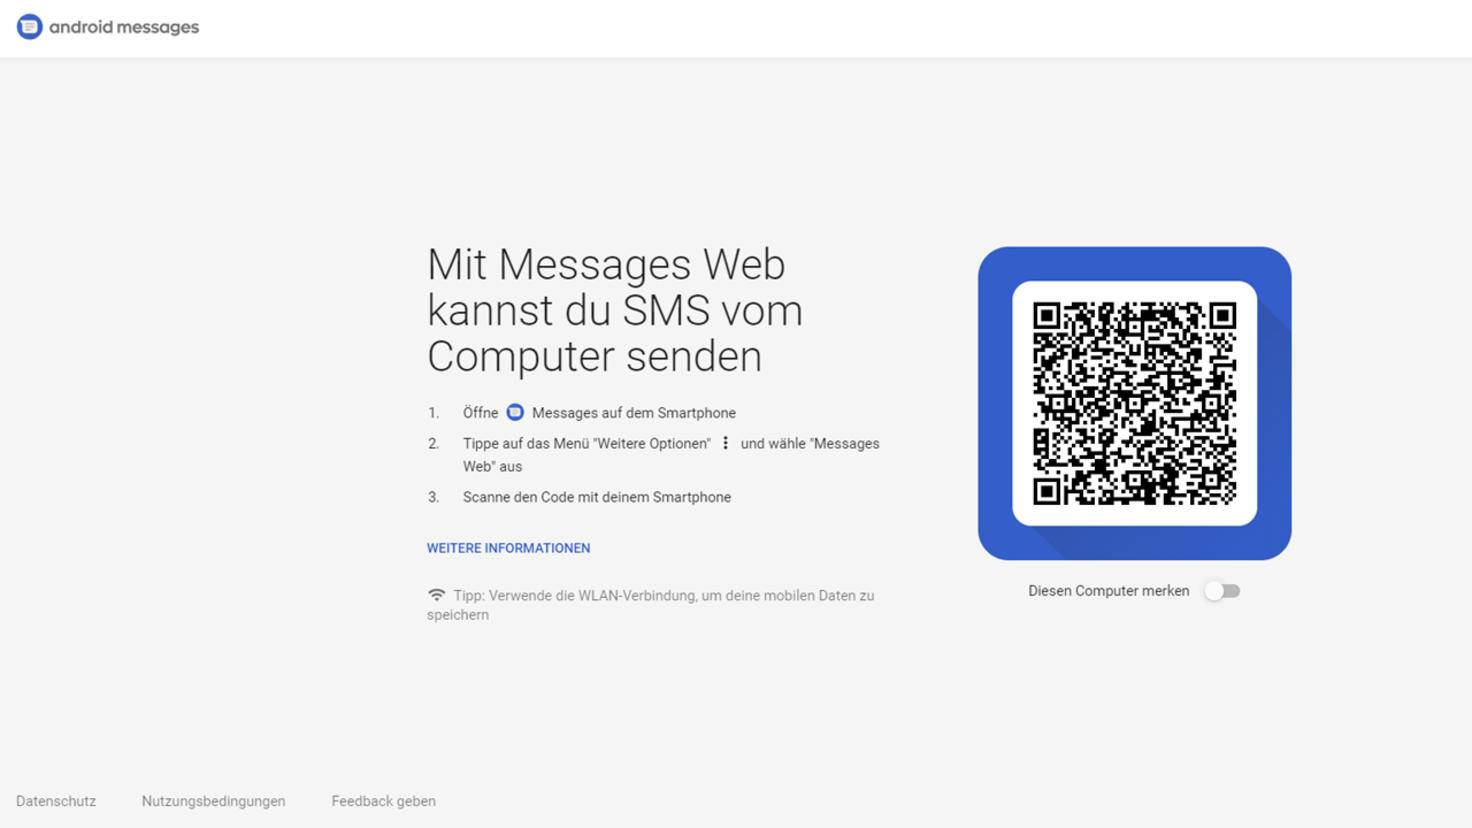 Android Messages Web